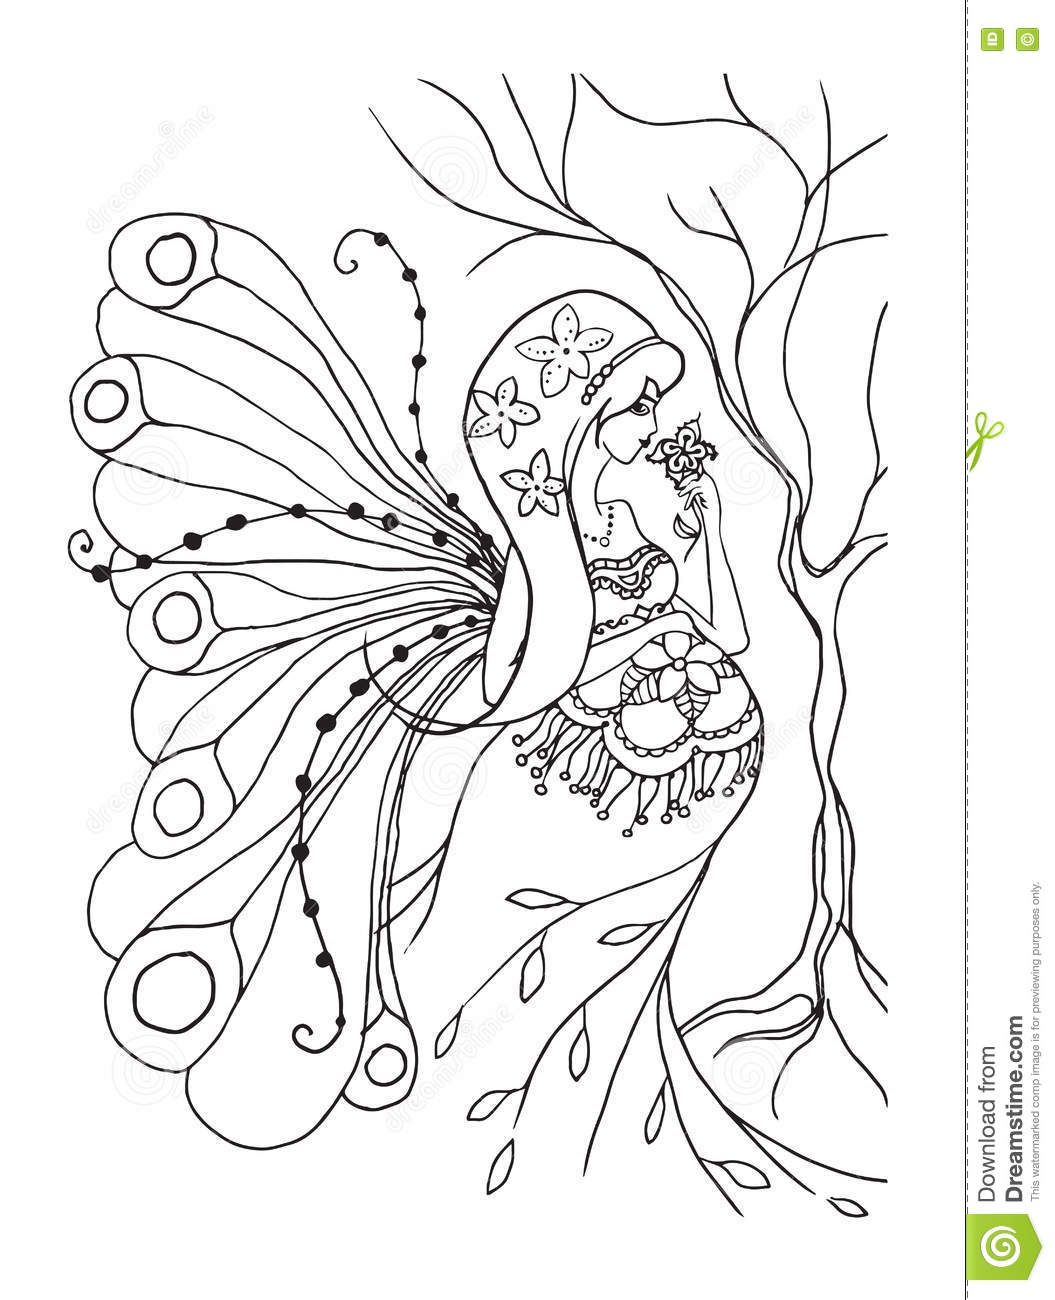 Adult Coloring Book Page With Pregnant Lady.Pregnancy In Doodle ...